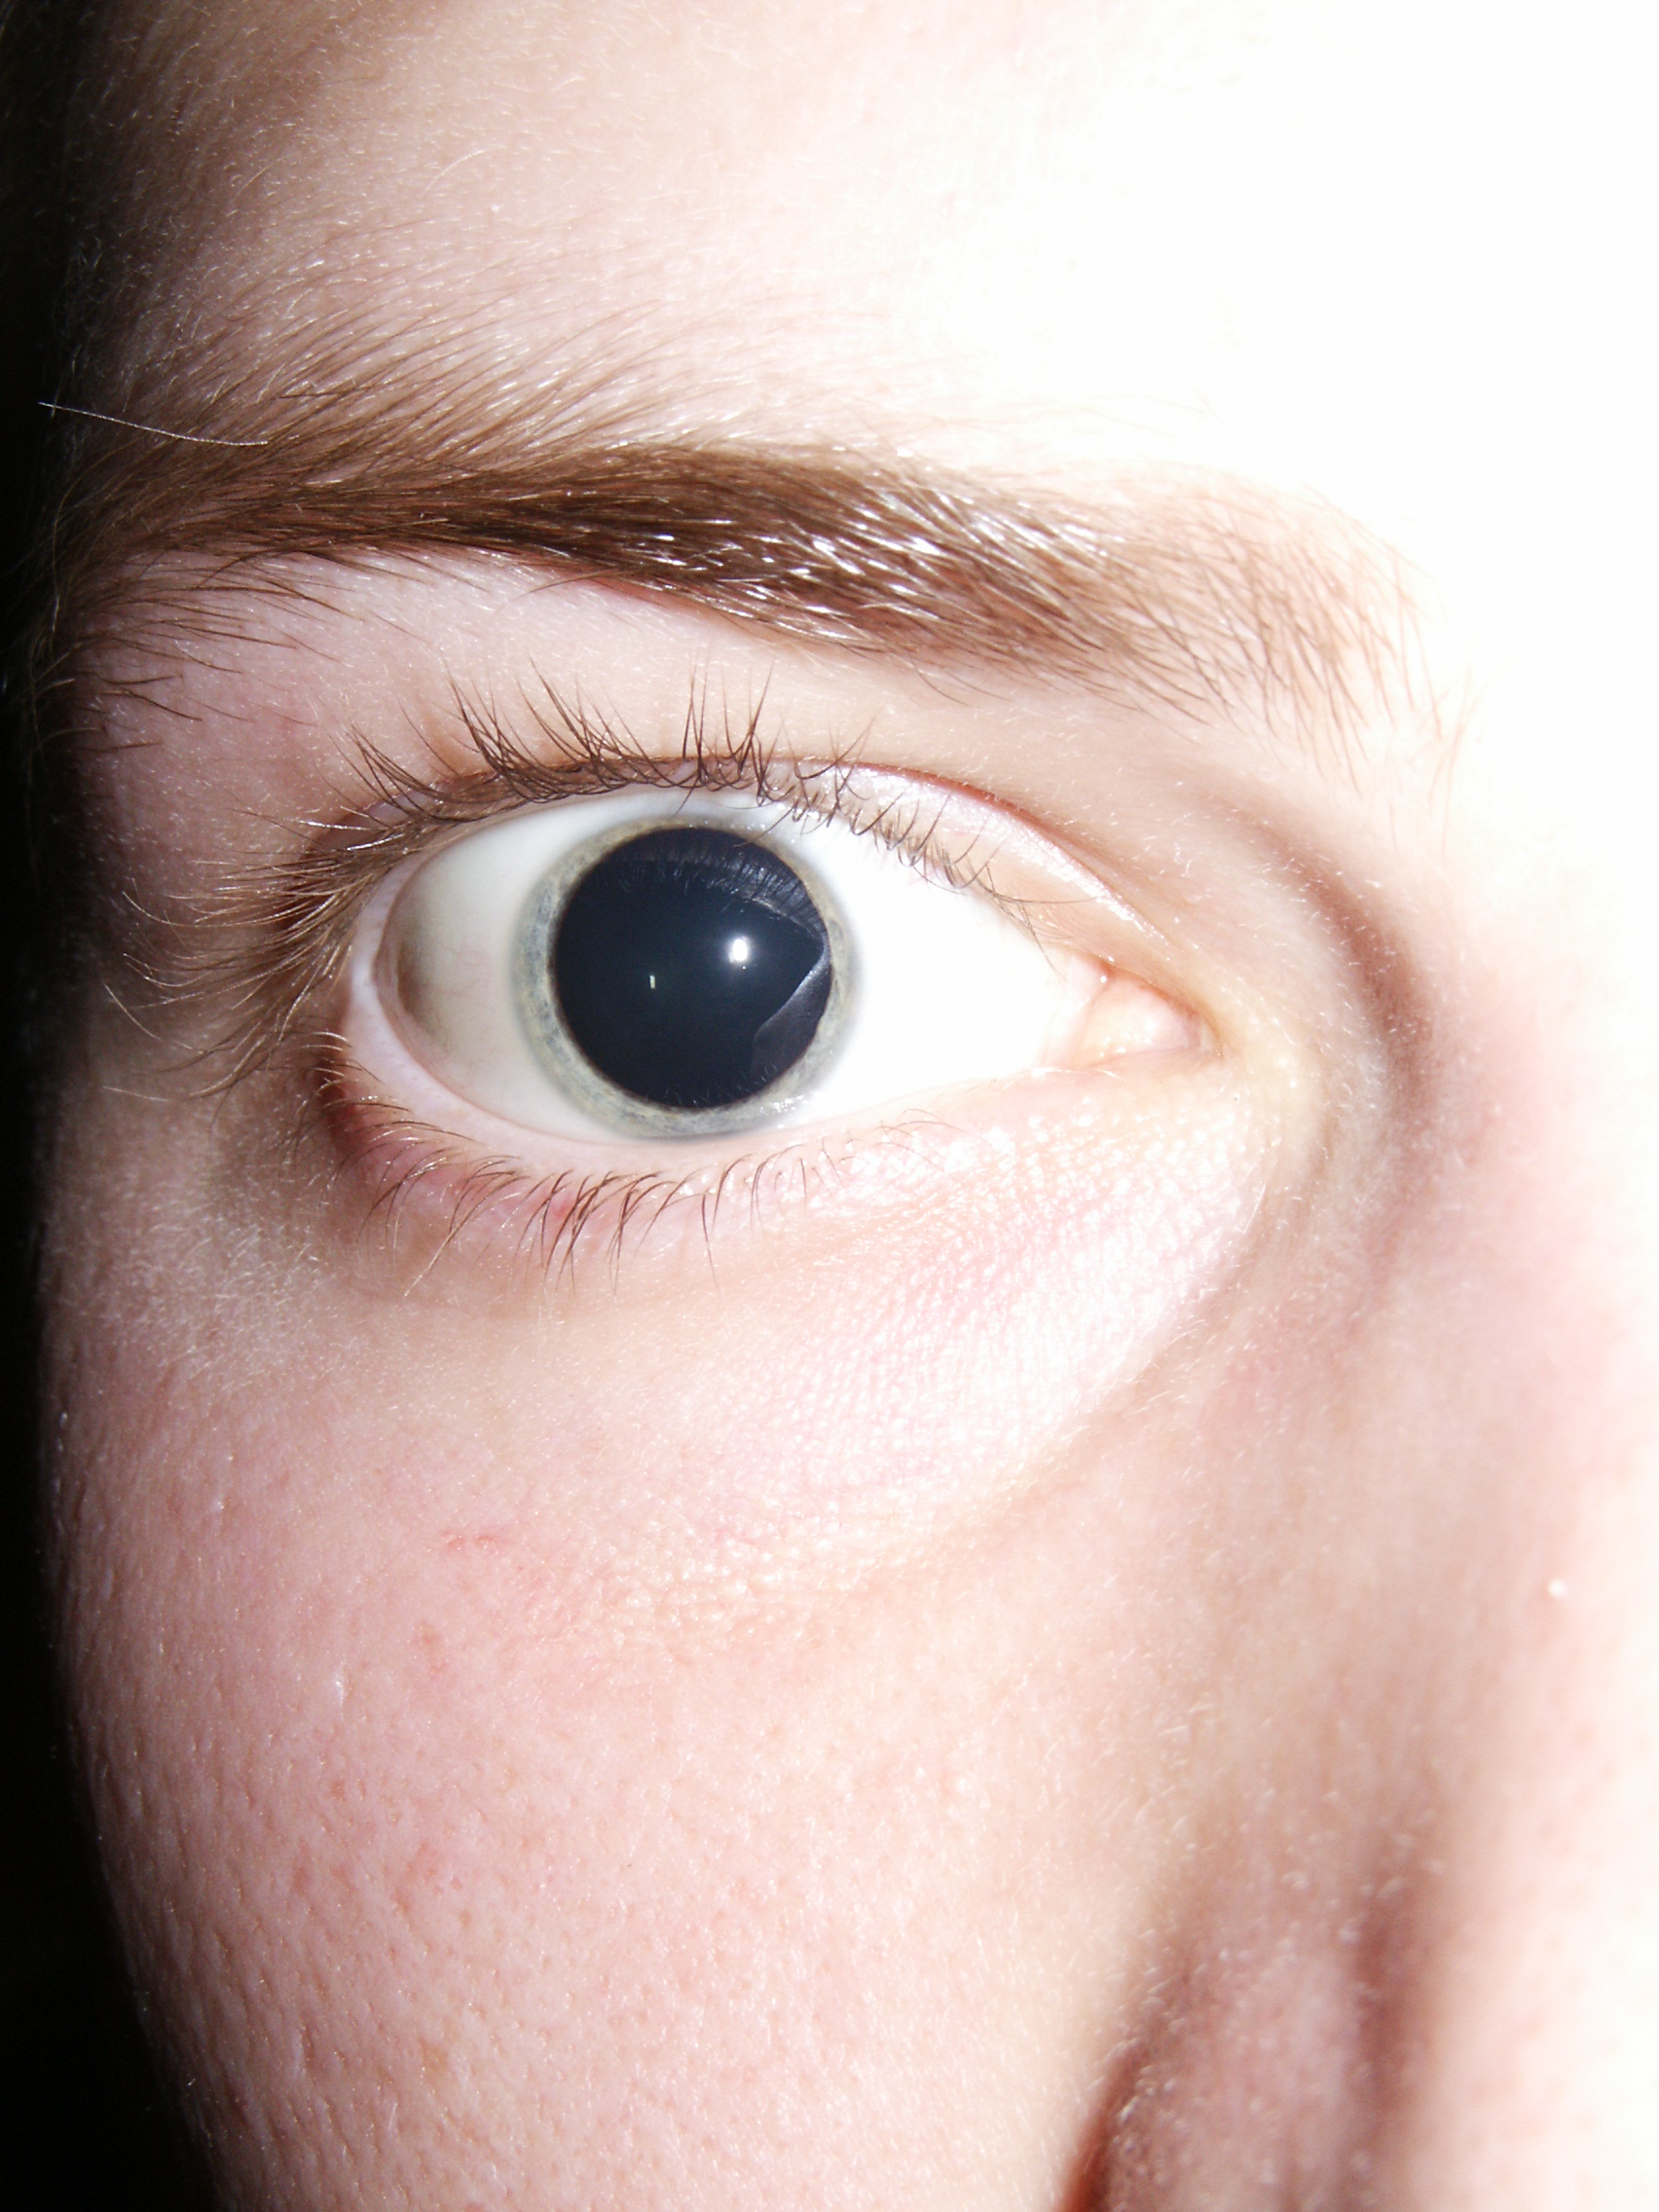 File:Dilated pupils 2006.jpg - Wikipedia, the free encyclopedia